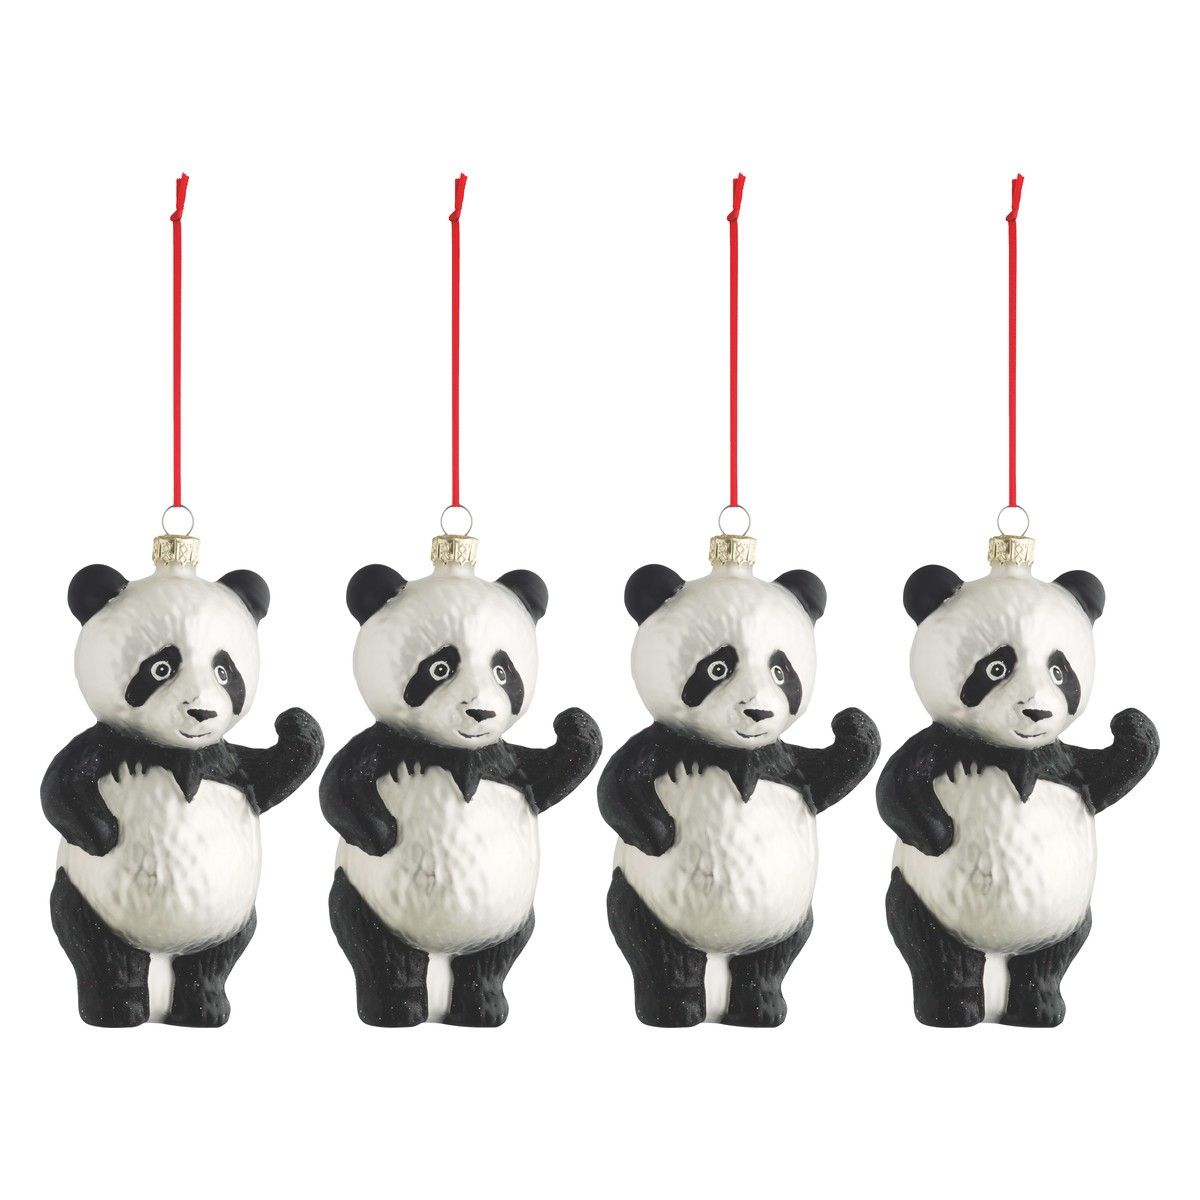 Habitat Christmas Trees: SHU Set Of 4 Panda Glass Christmas Tree Decorations